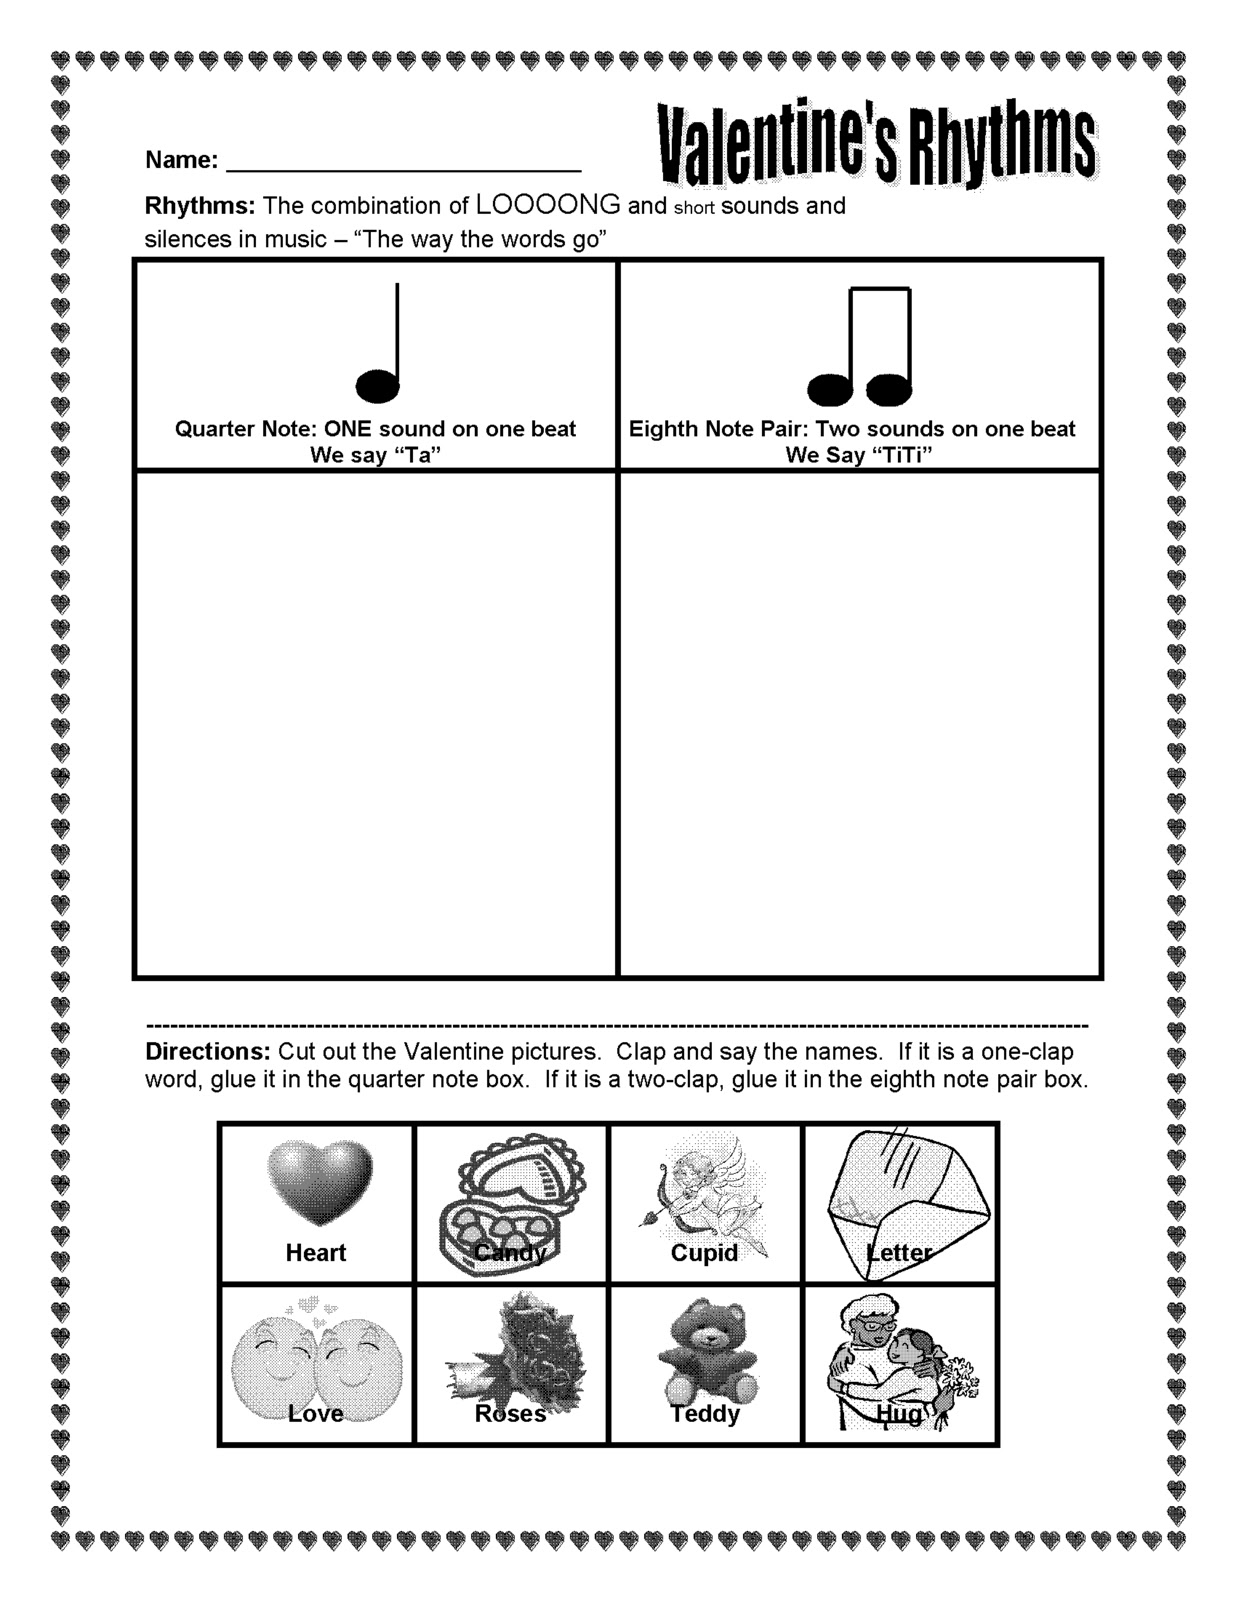 The Sweetest Melody: Valentine\'s Day Rhythm Activity - ta and titi